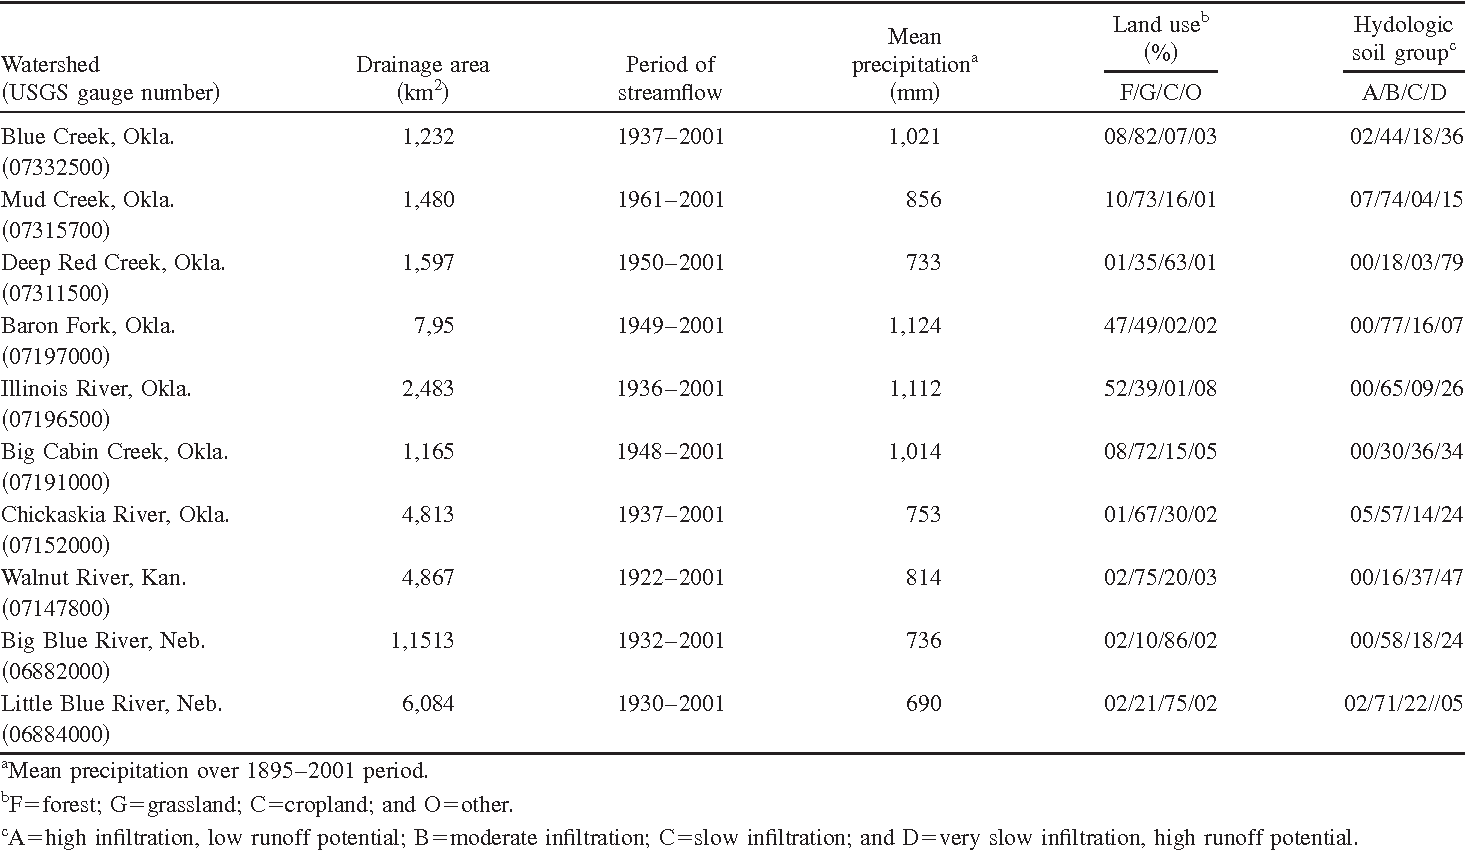 Table 1. Streamflow, Climate Division, and Precipitation Characteristics by Watershed